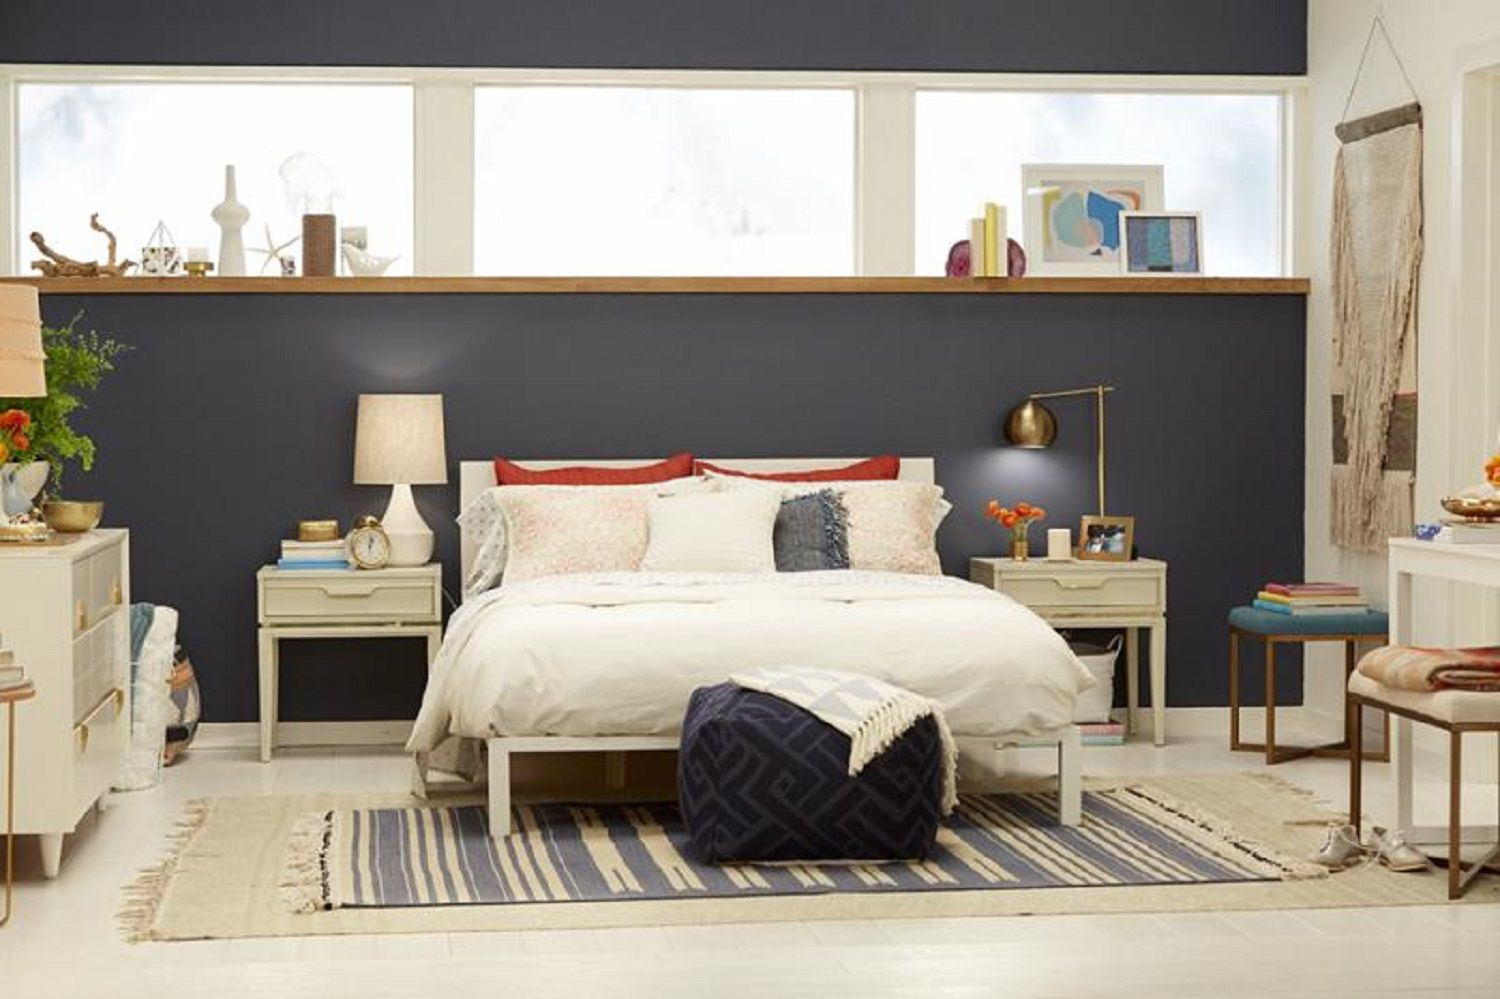 Mid Century Modern Bedroom Decorating Ideas for 14 Some of the Coolest Ways How to Build Modern Style Bedrooms